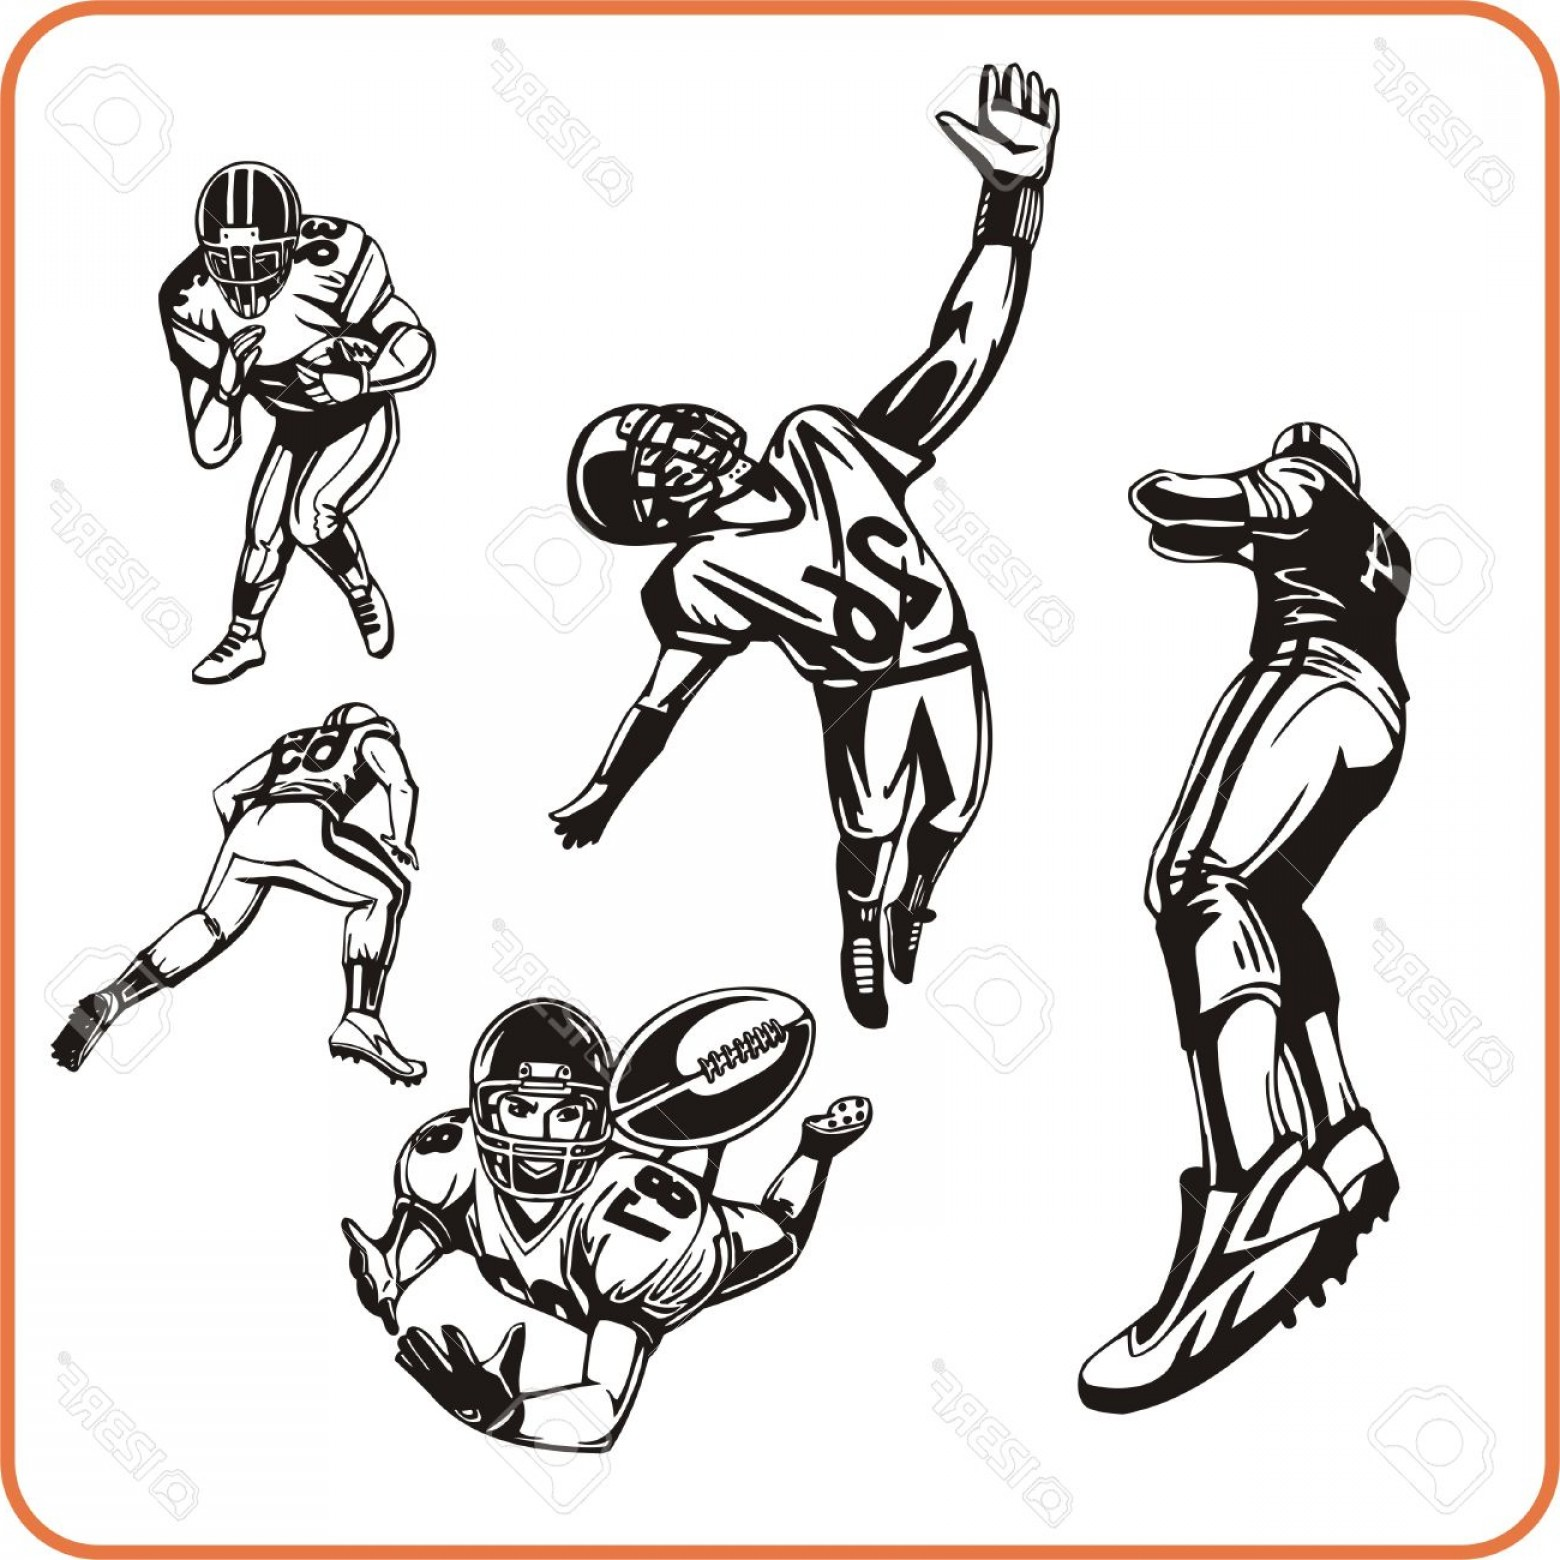 High Res Vector American Football: Photoamerican Football Player Vector Illustration